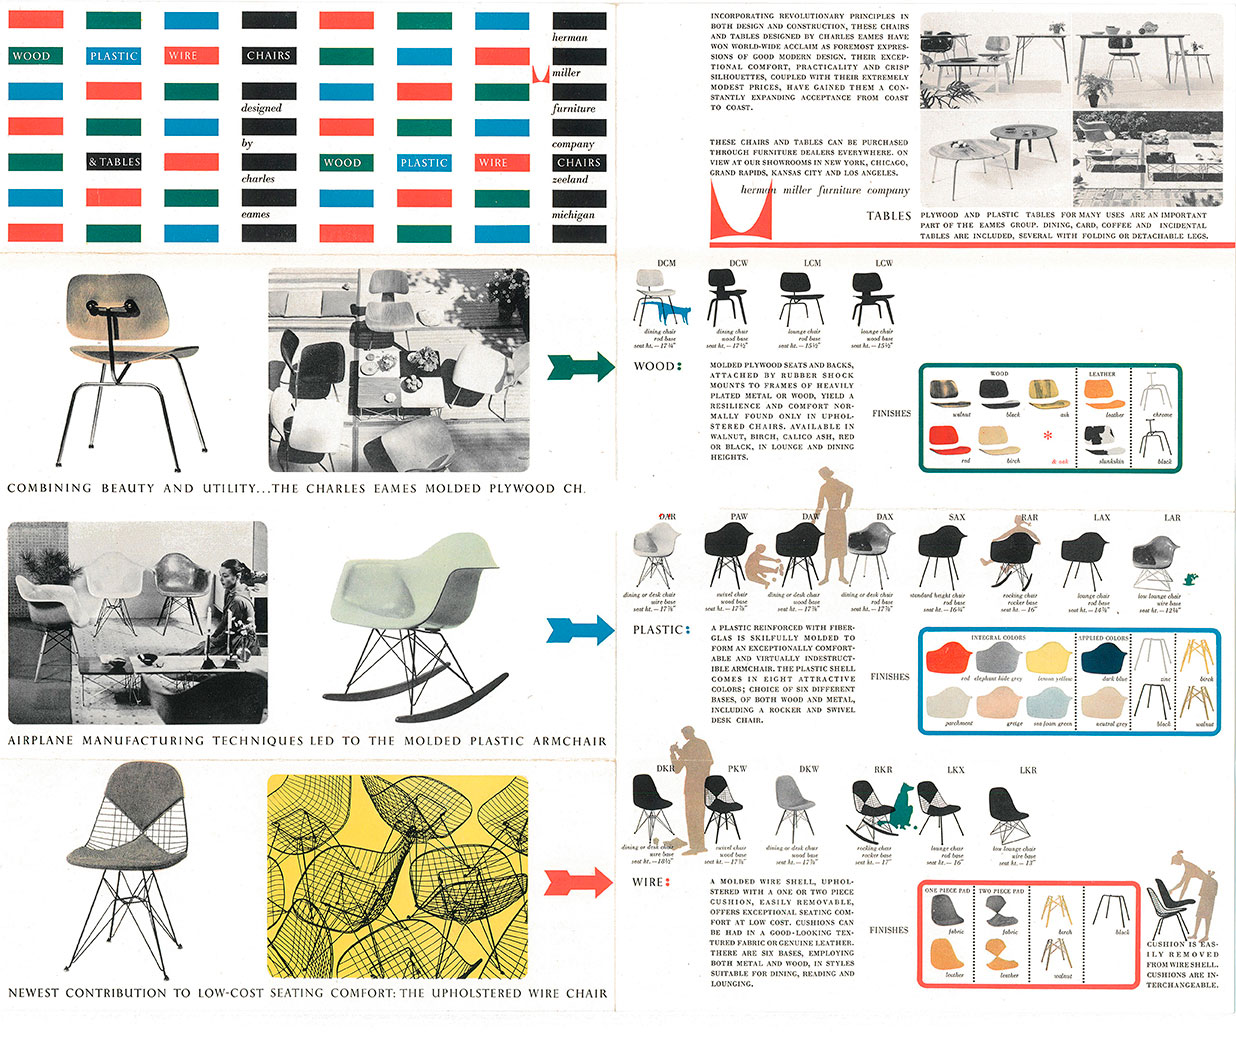 1952-CHAIRS-eames